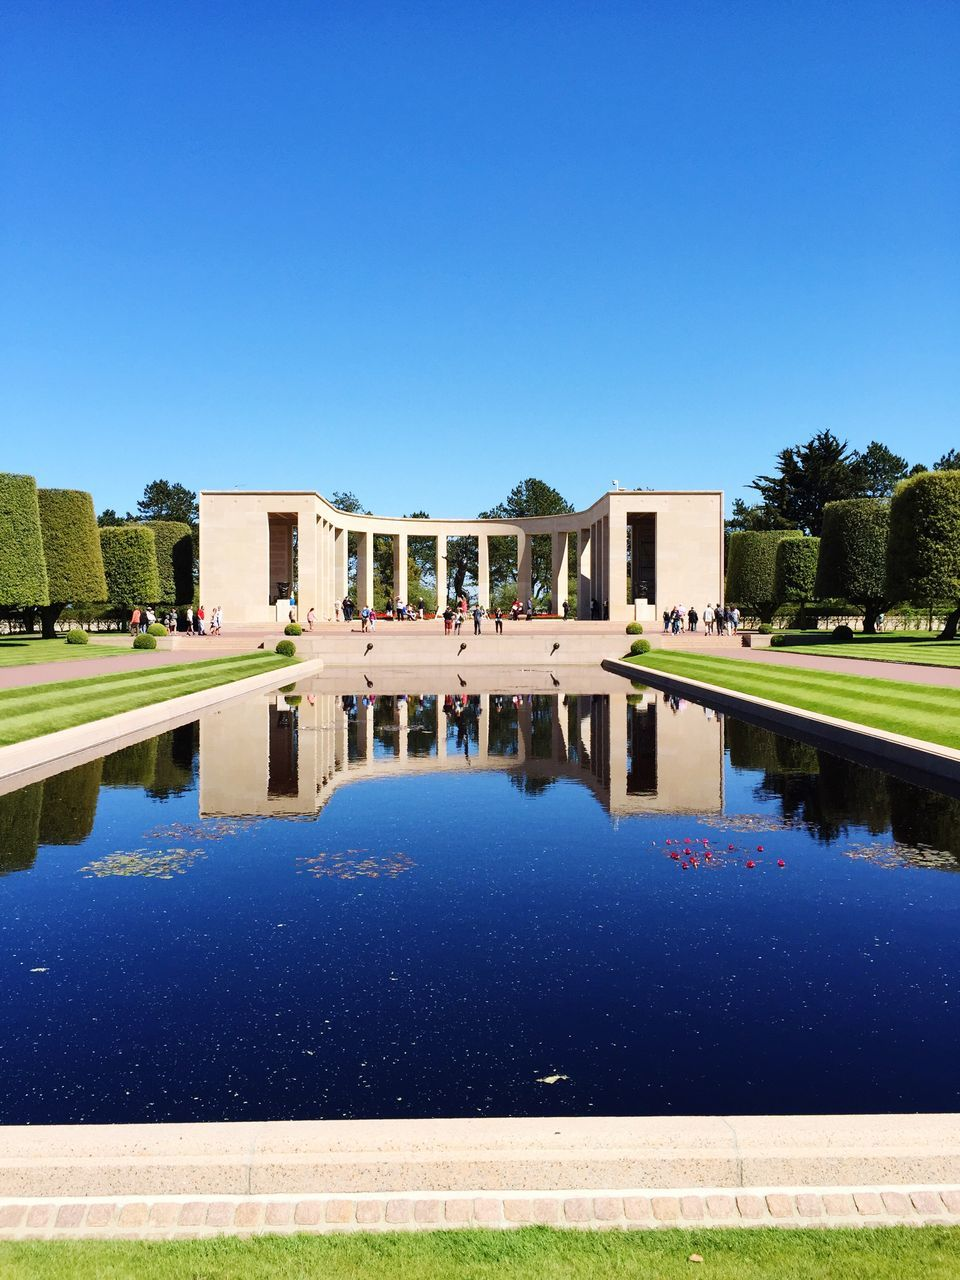 built structure, architecture, reflection, blue, history, building exterior, clear sky, water, day, tree, outdoors, old ruin, ancient, sunlight, reflecting pool, grass, swimming pool, ancient civilization, no people, nature, sky